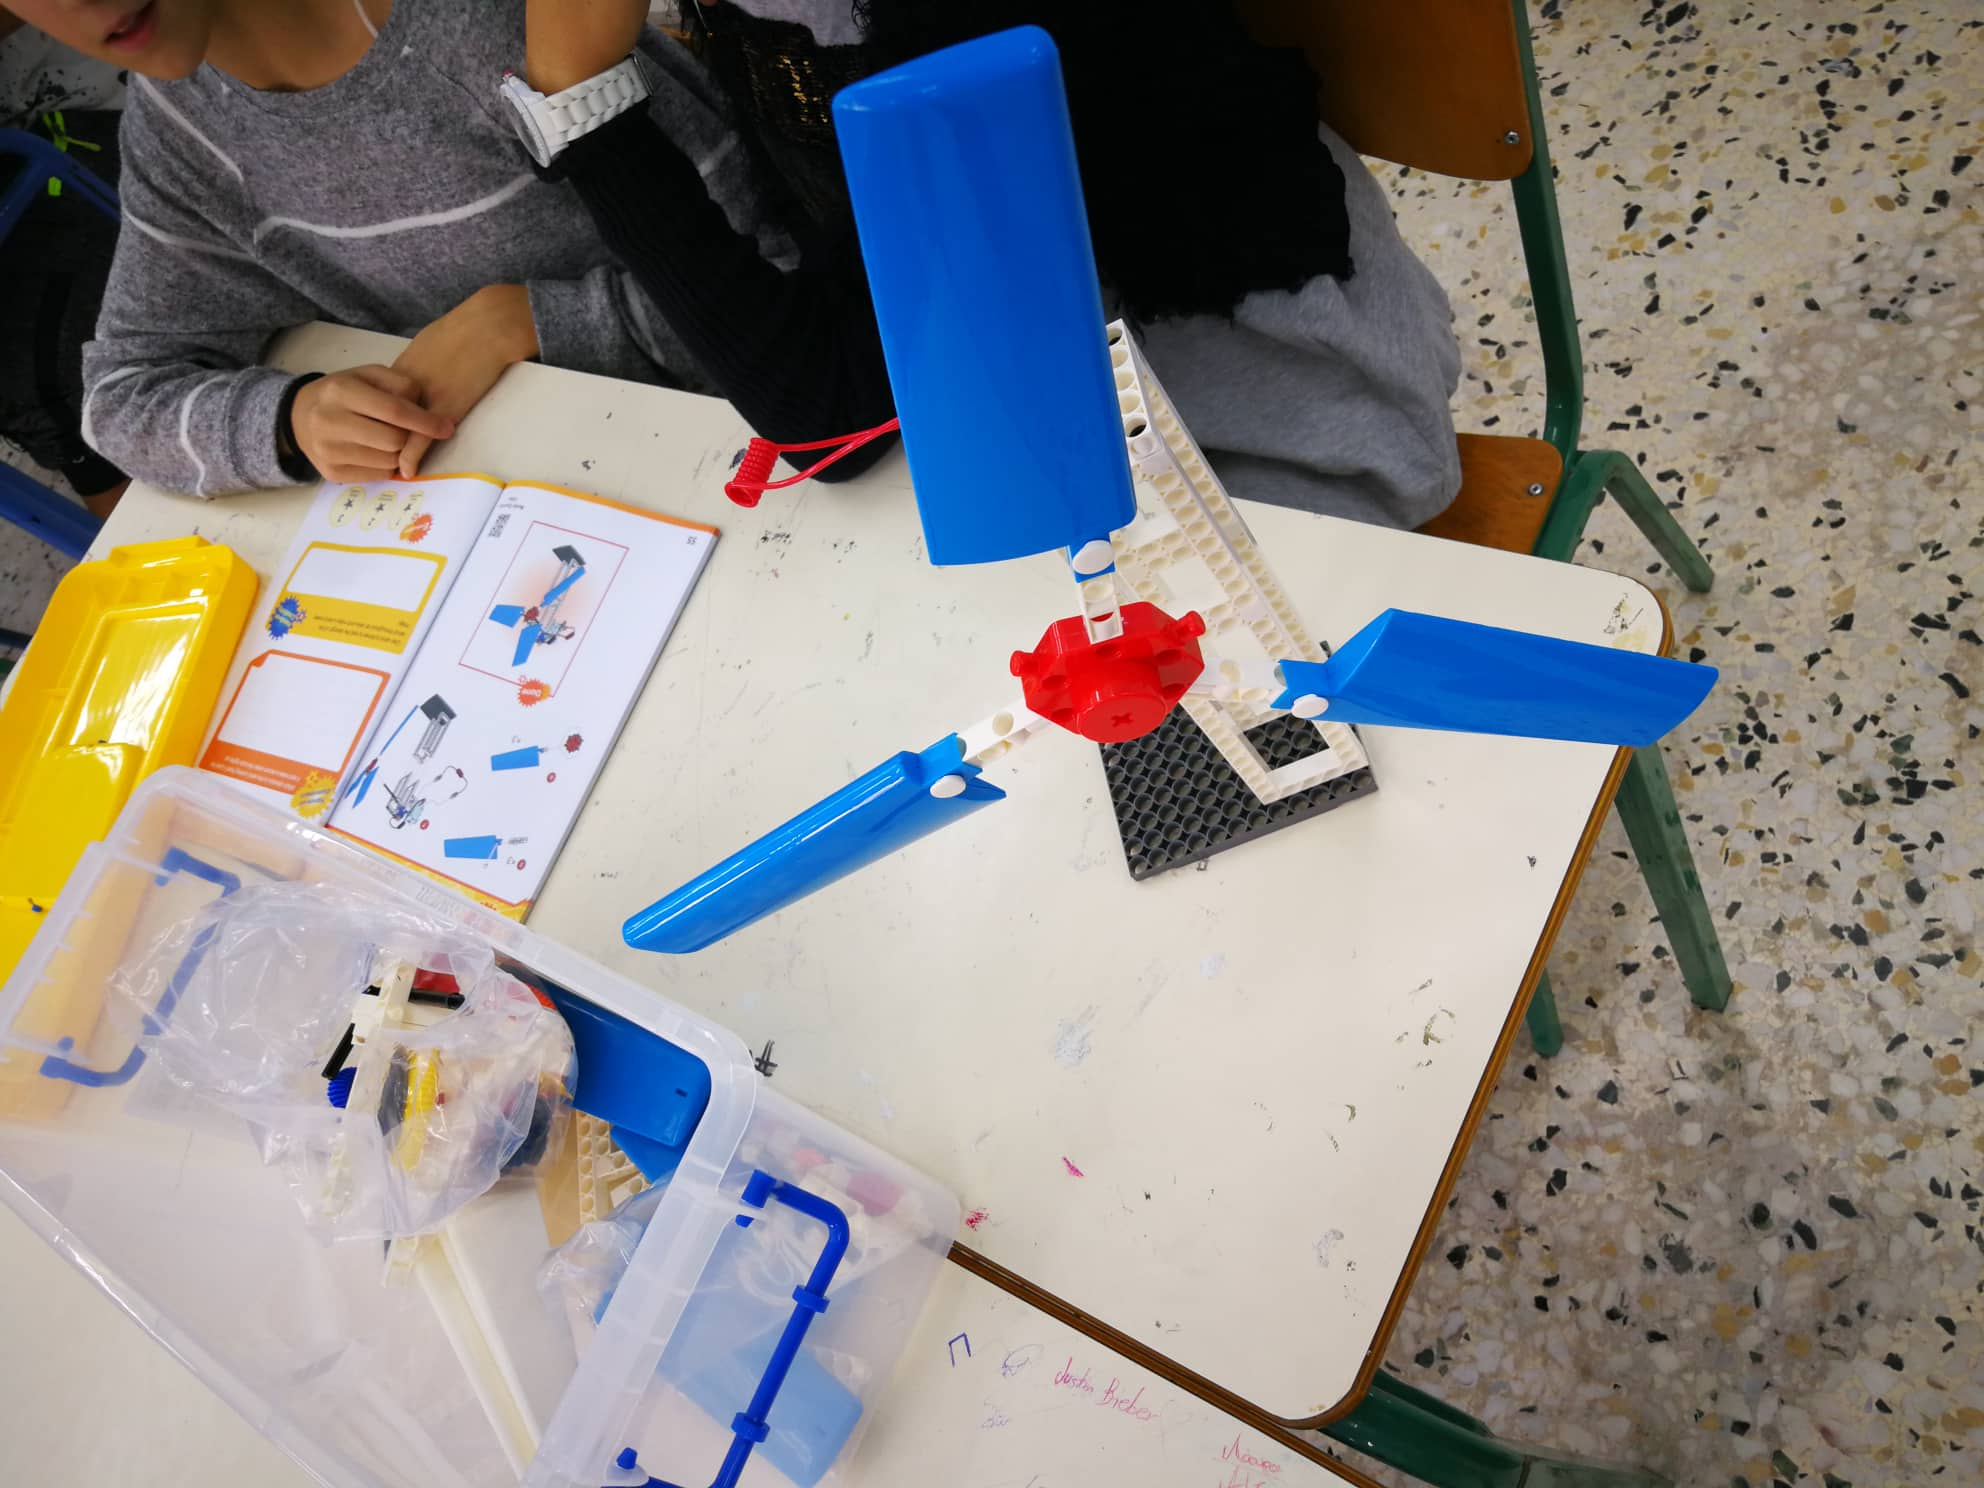 Ο STEM Education και η EUNICE ENERGY GROUP (EEG) δίνουν το παρόν στο Athens Science Festival 2019